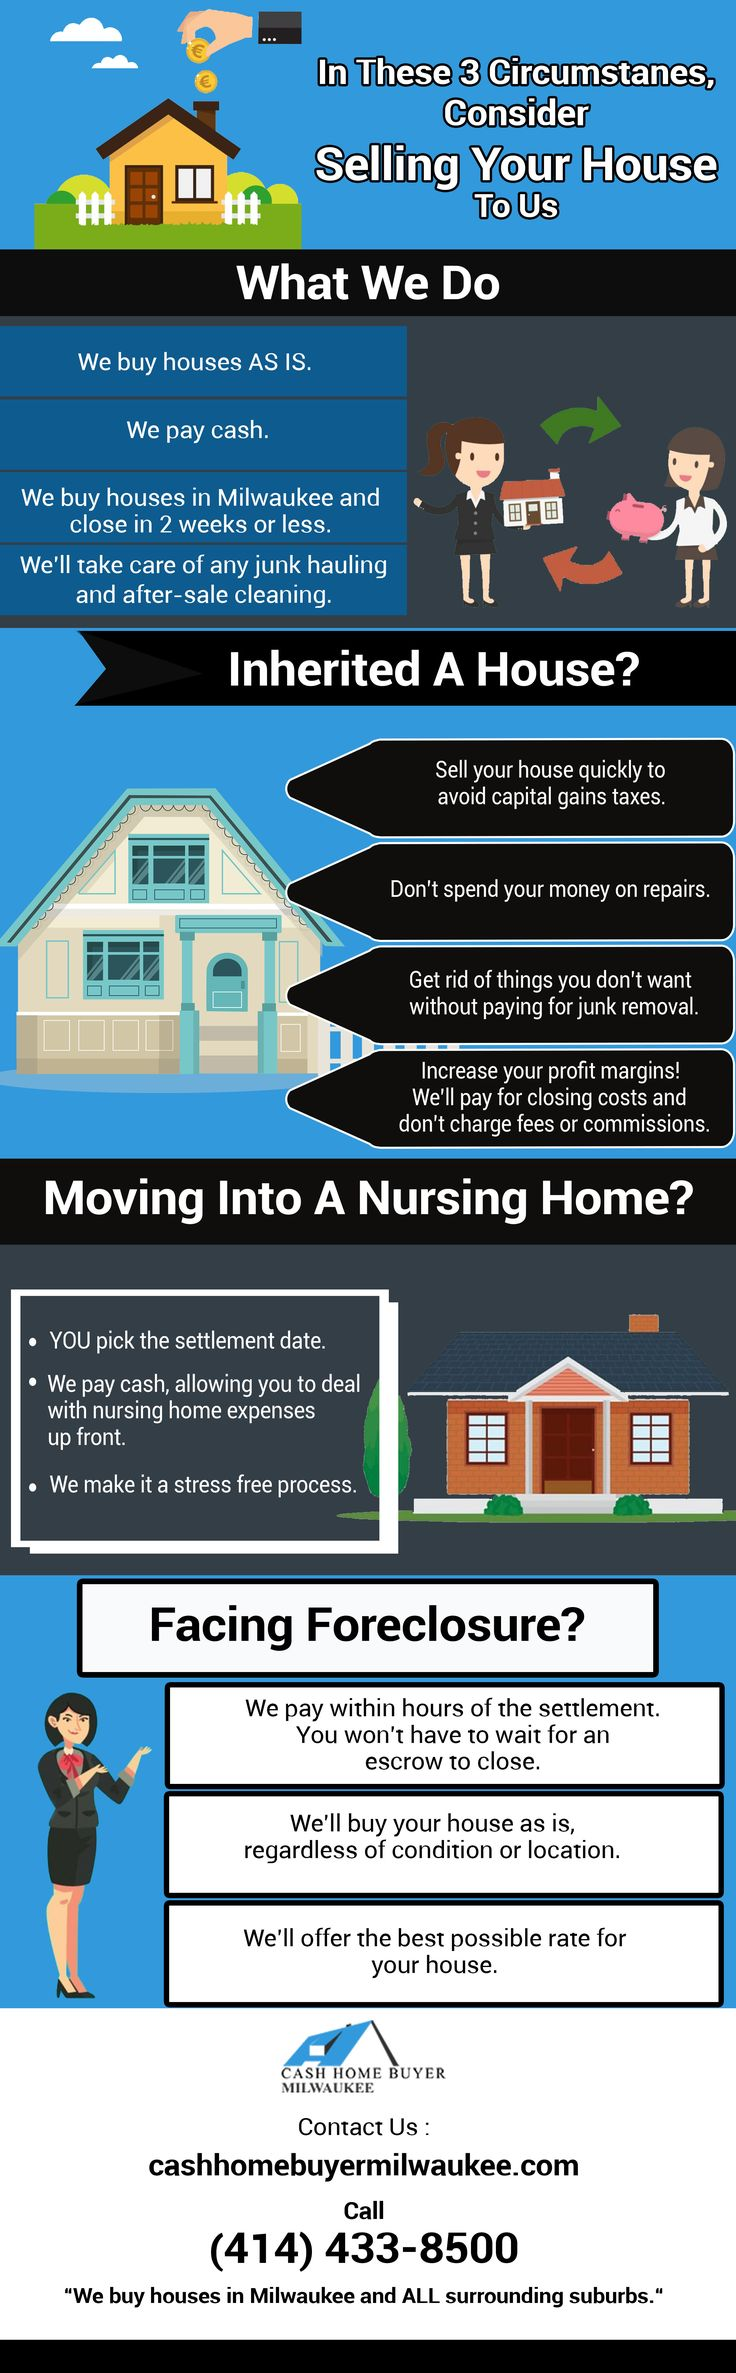 Cash Home Buyer Milwaukee Is A Real Estate Investmentpany That Buys Your  House For Cash